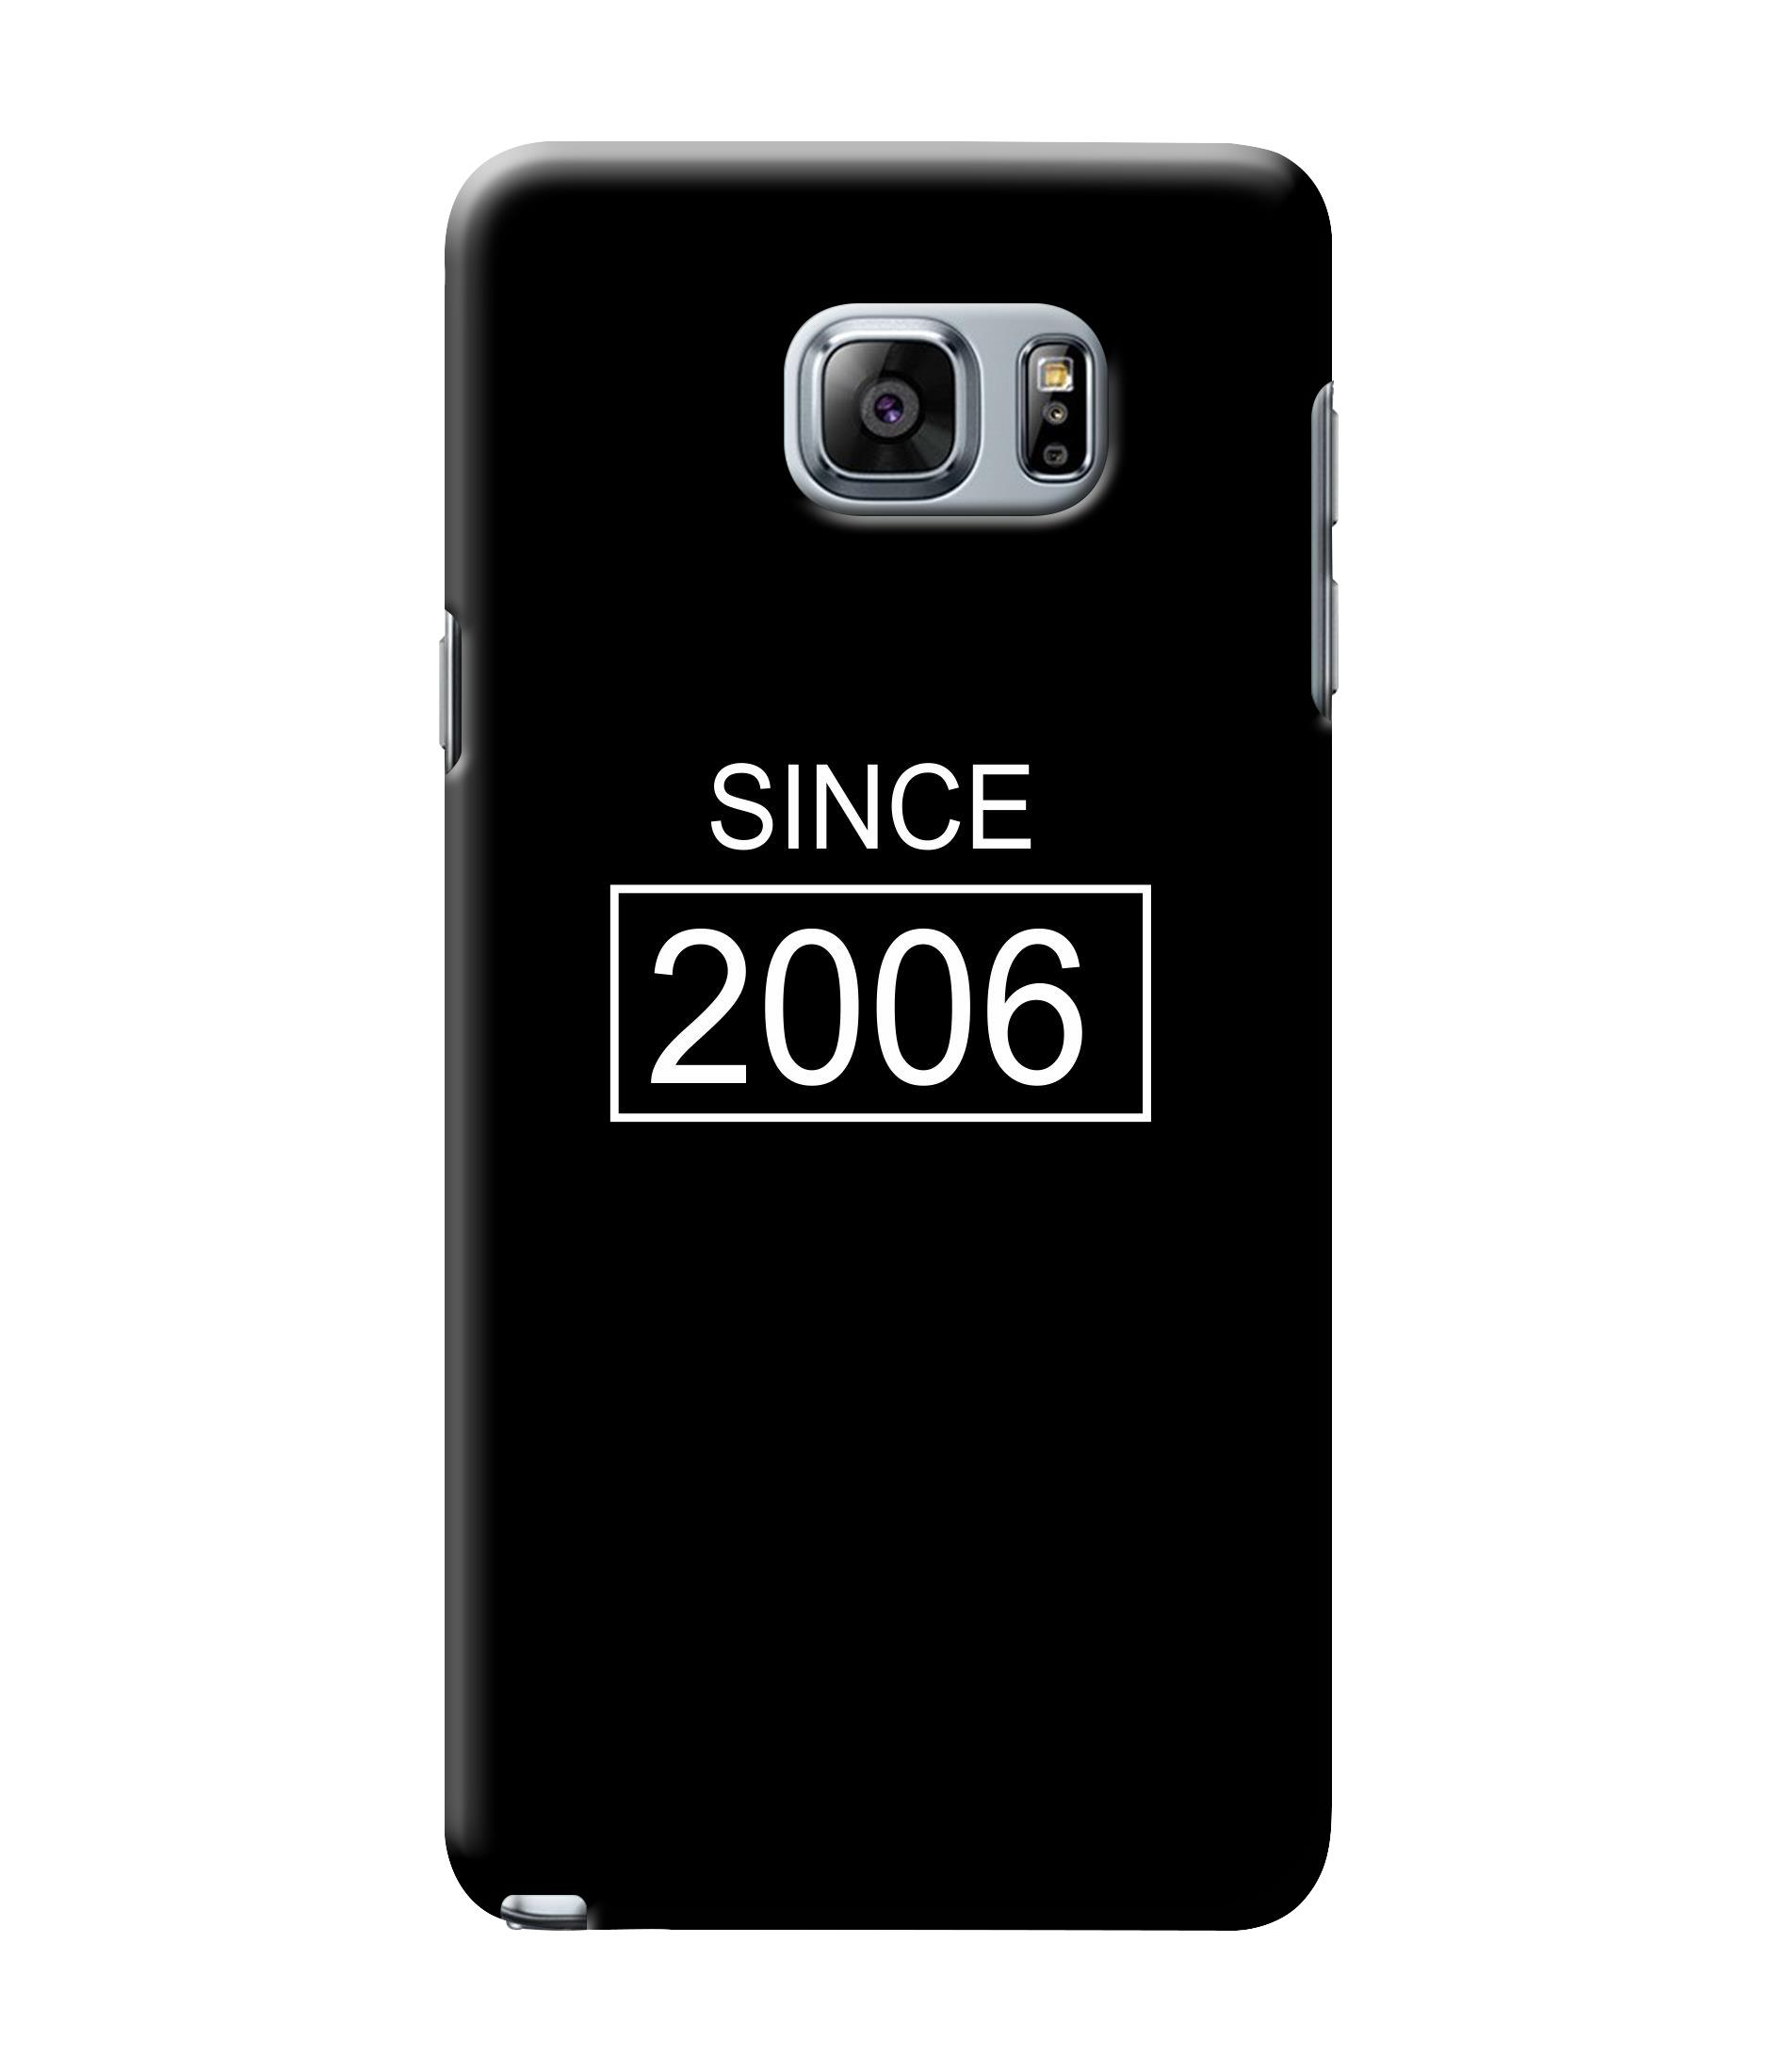 caseophile2 Samsung Galaxy Note 5 Since 2006 Mobile Case